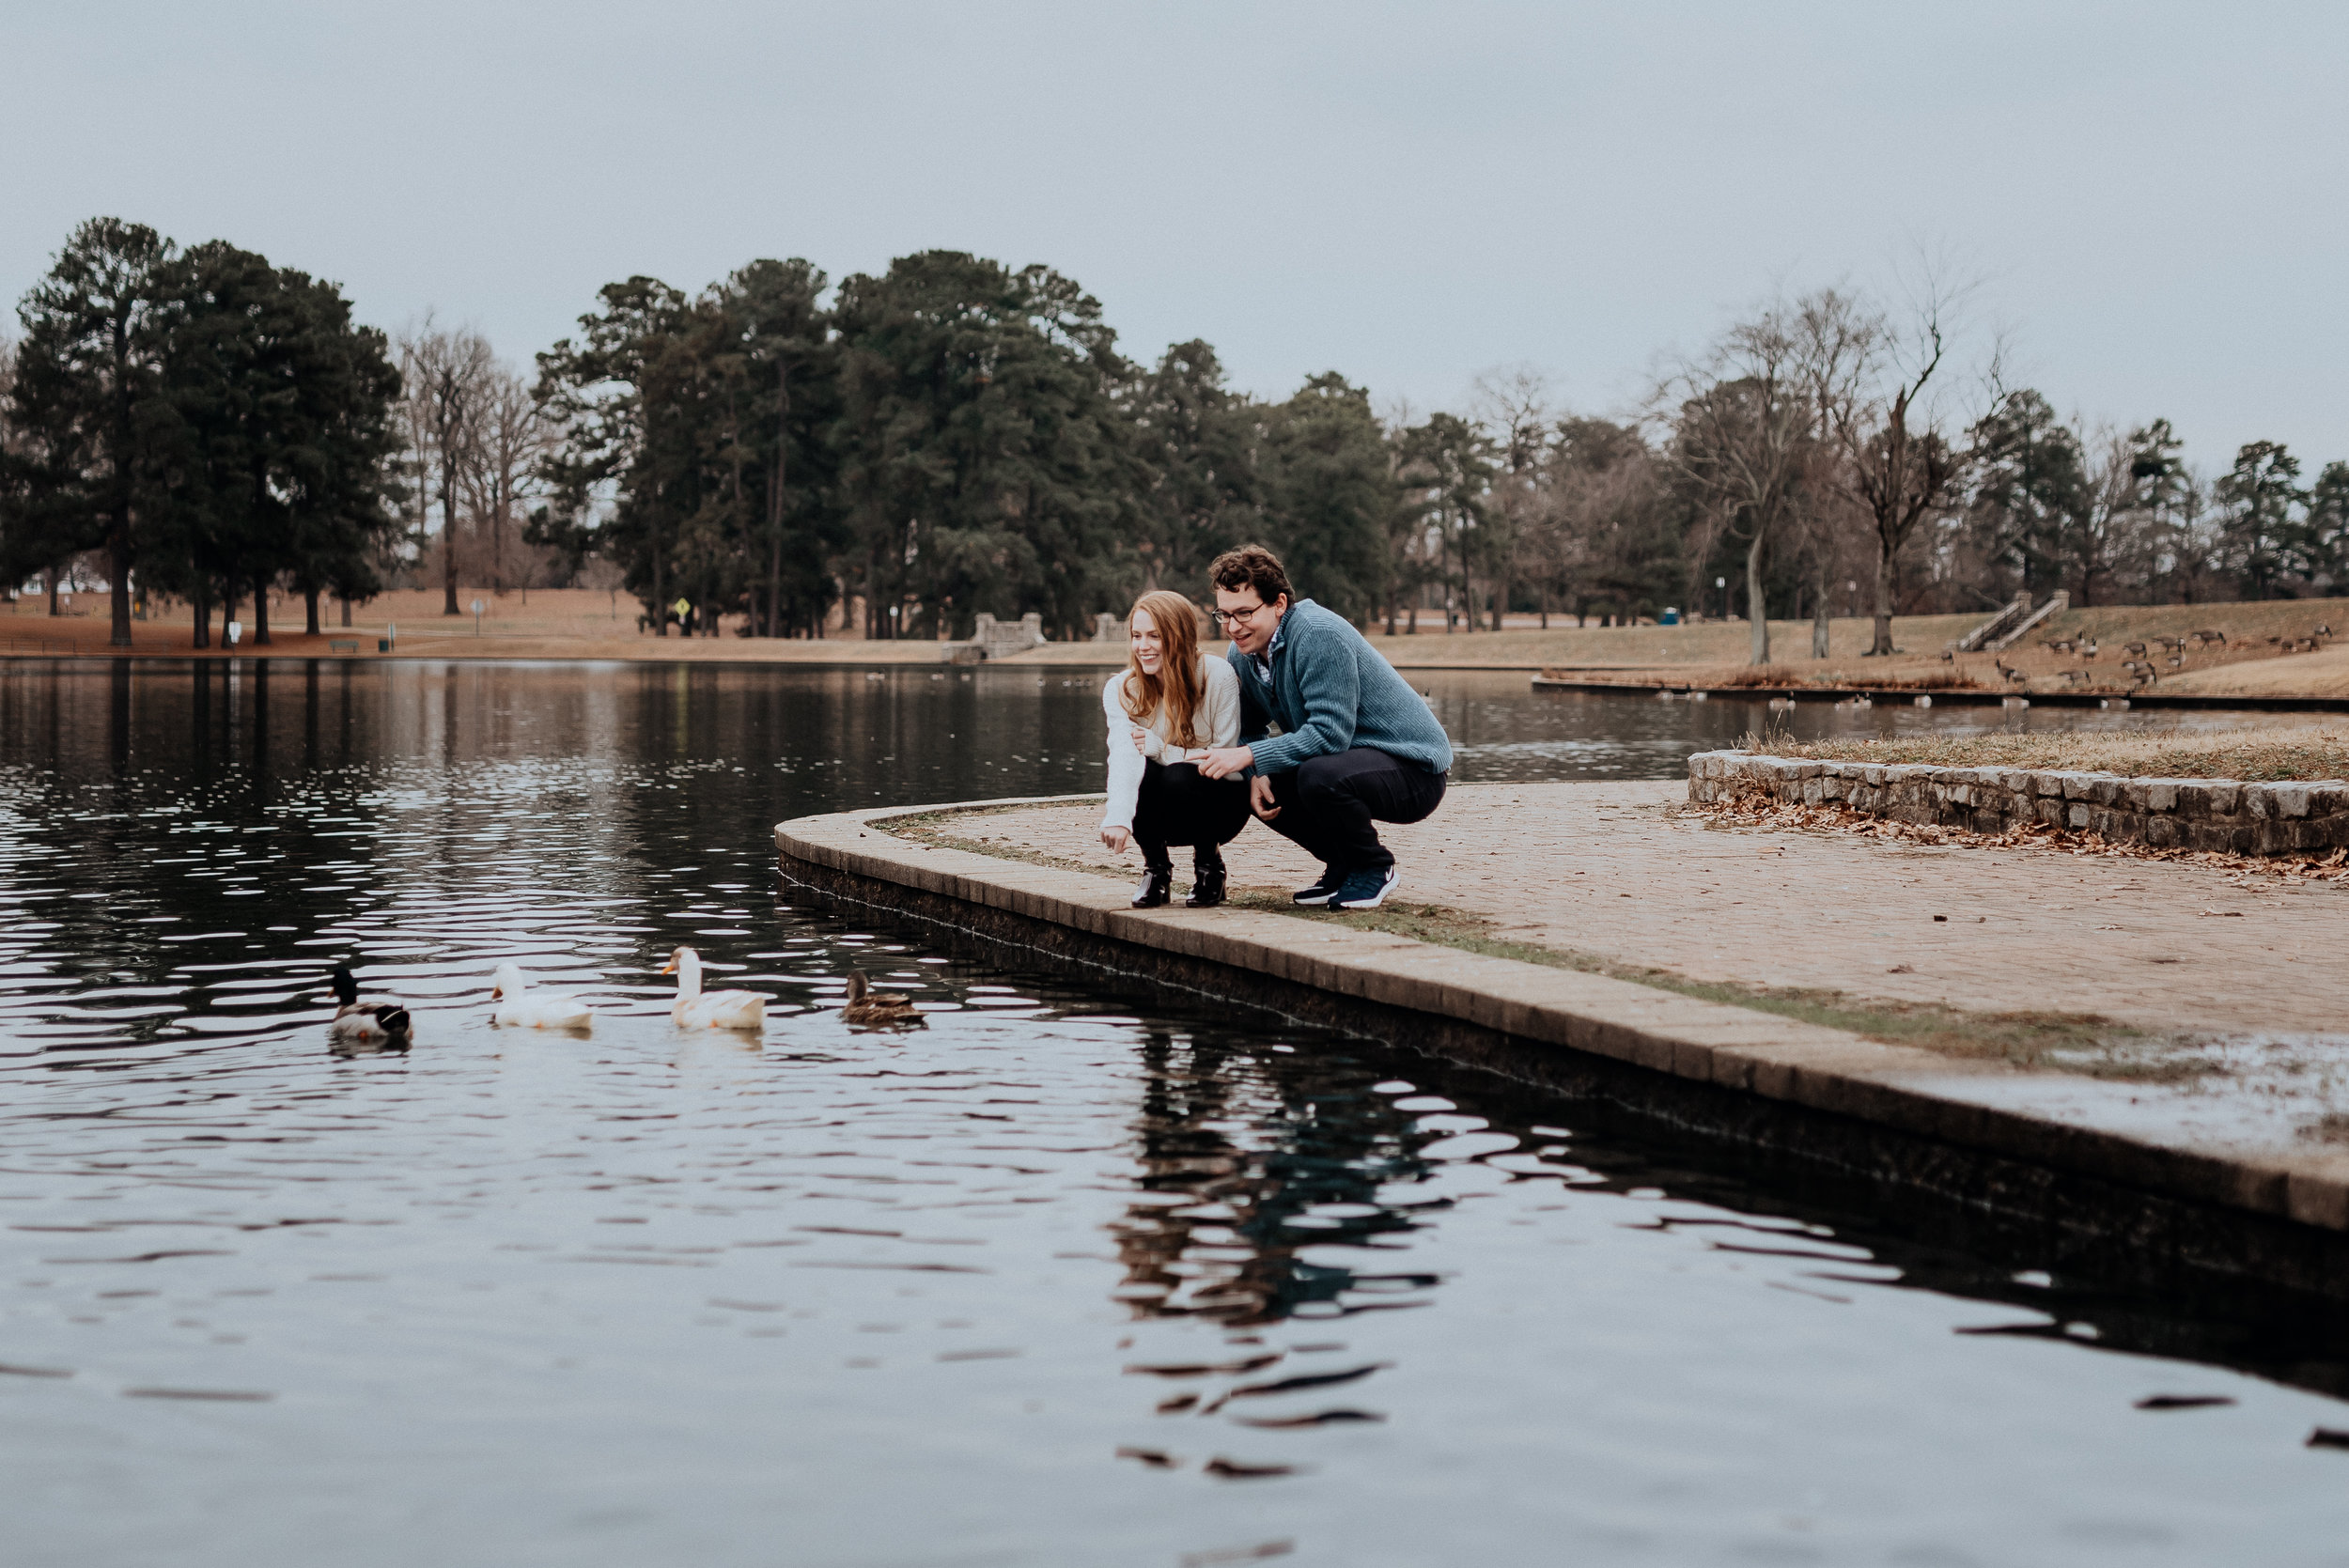 Richmond VA Byrd Park Swan Lake Engagement Session